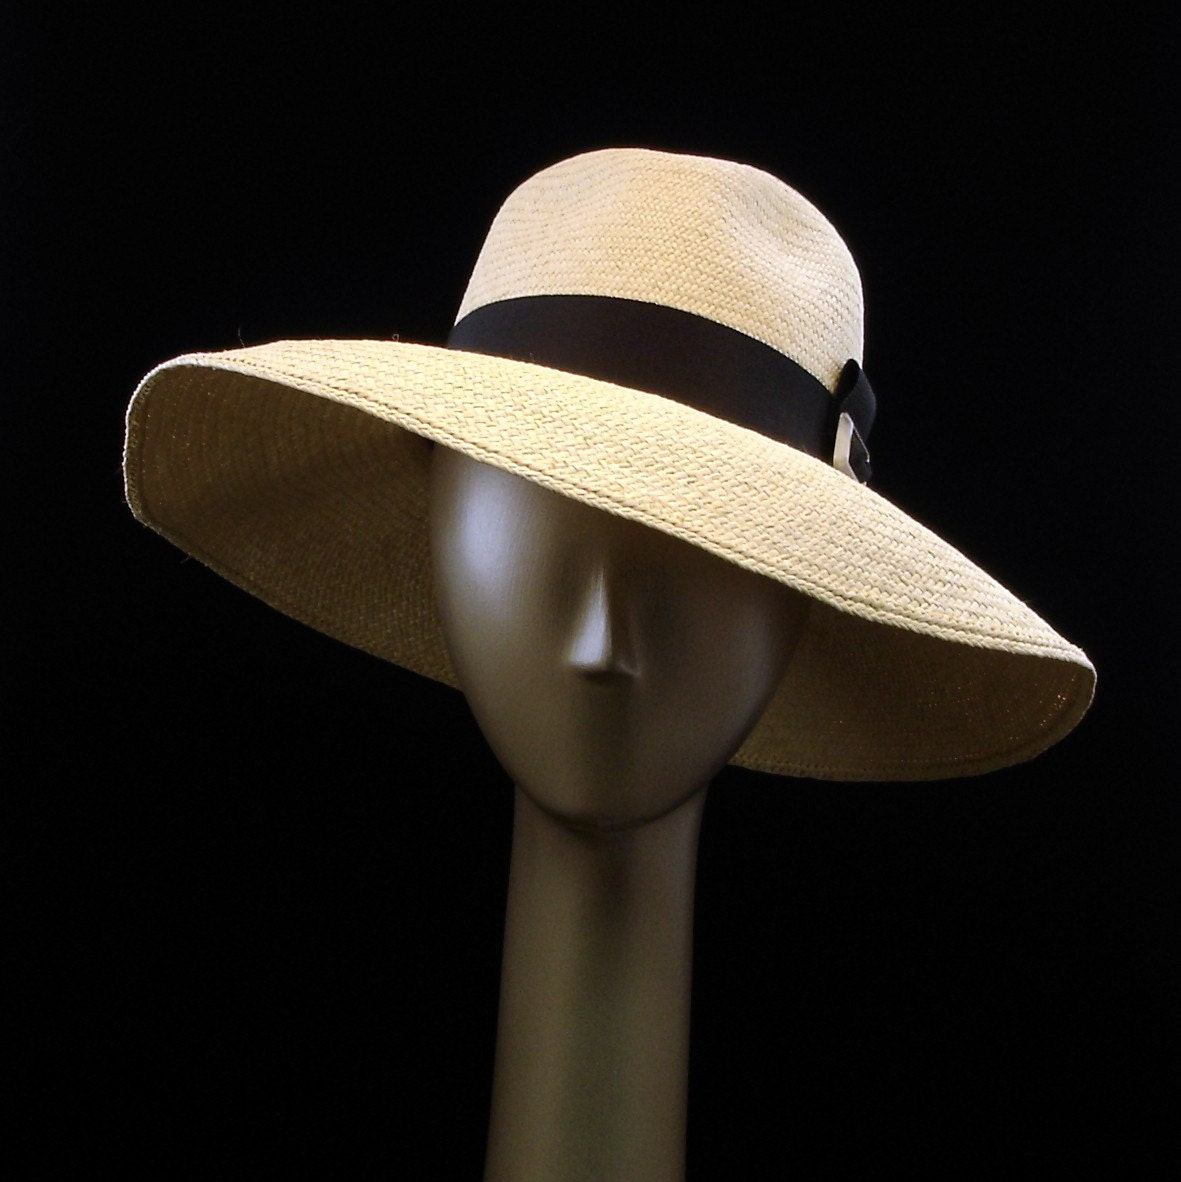 SUN HAT Wide Brim Hat  for Women  Natural Straw Hat